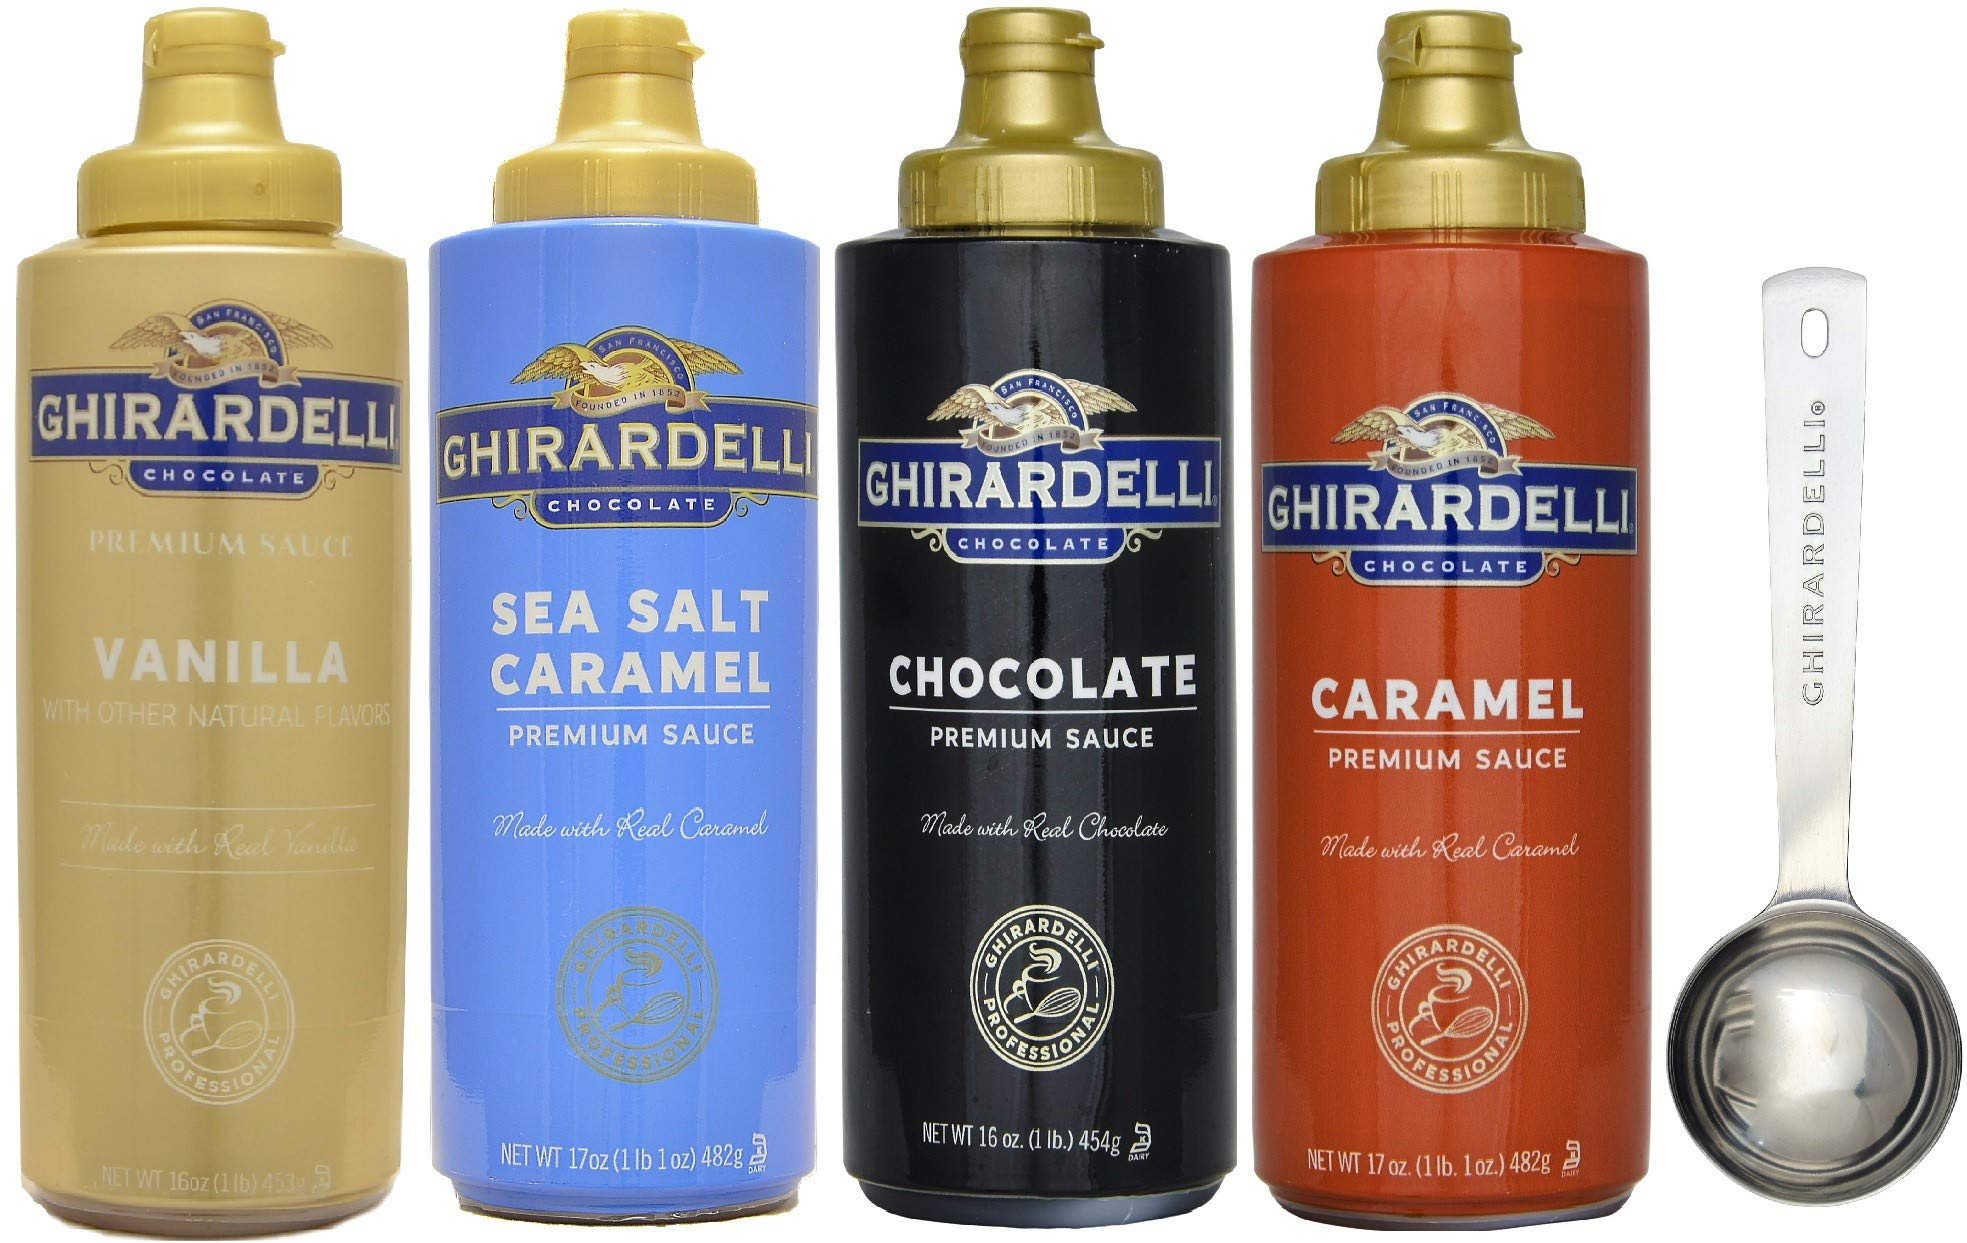 Ghirardelli - 16 Ounce Black Label, 16 Ounce Vanilla, 17 Ounce Caramel, 17 Ounce Sea Salt Caramel Flavored Sauce (Set of 4) - with Limited Edition Measuring Spoon by Ghirardelli (Image #1)